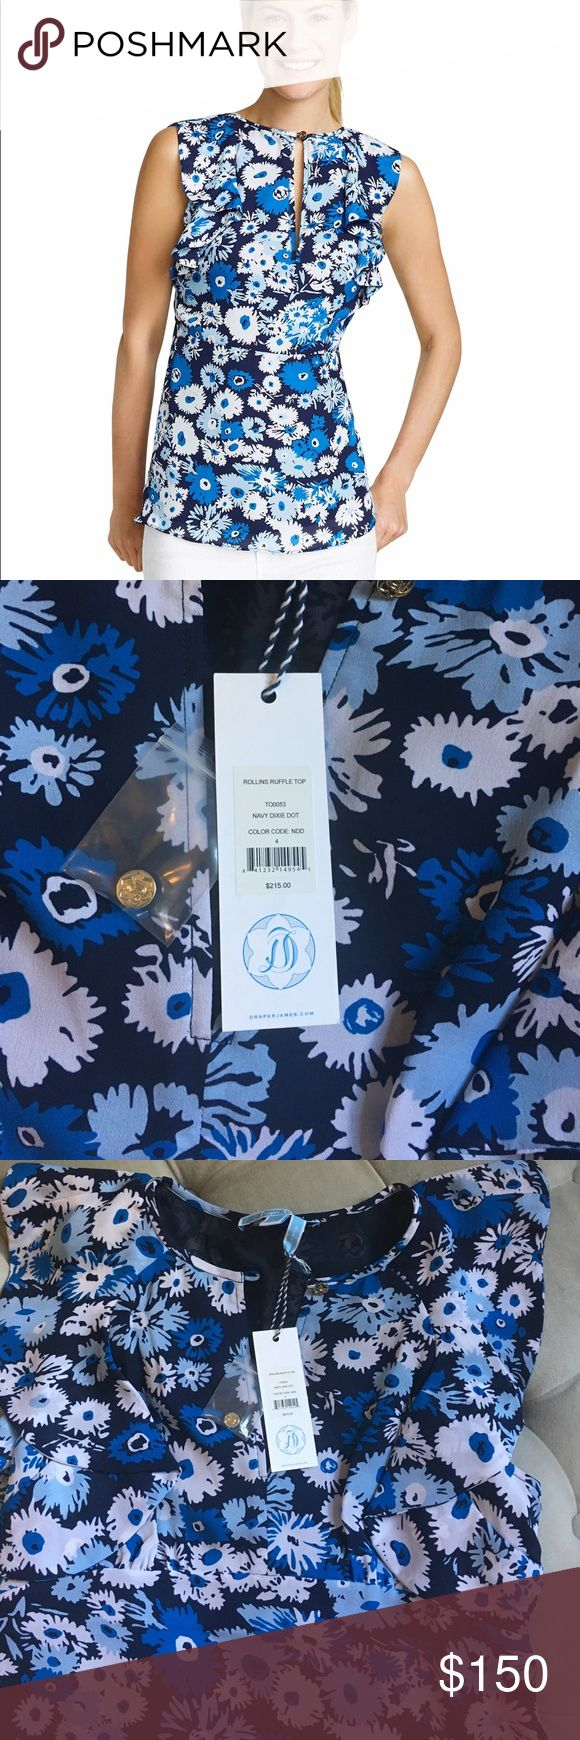 NWT Draper James Rollins Ruffle Top Brand new with tags Rollins Ruffle Top in Navy Dixie Dot by Draper James. Draper James Tops